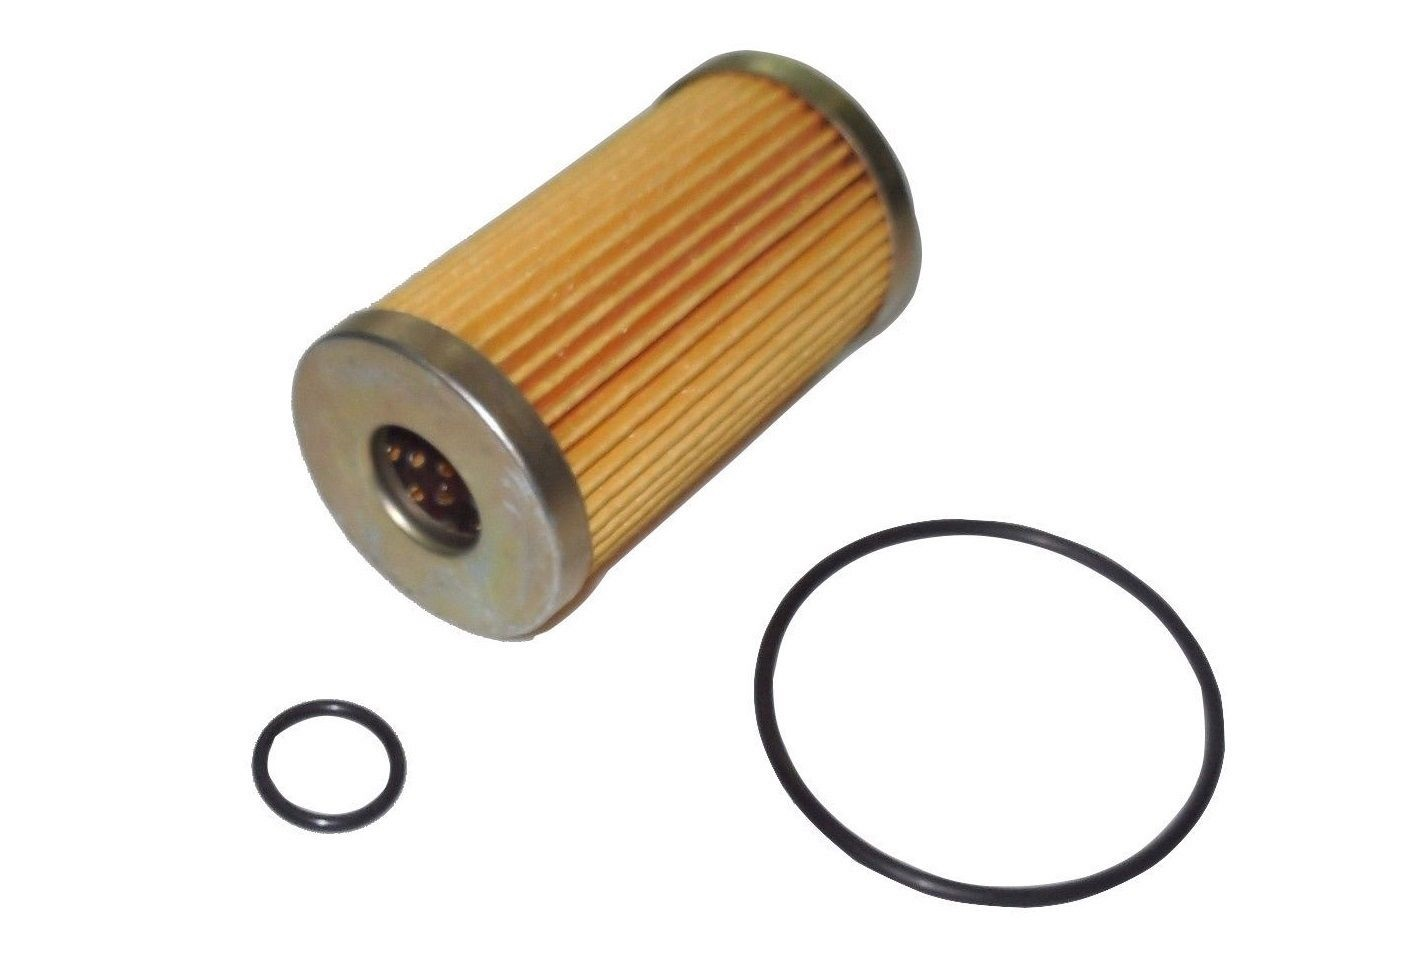 New Fuel Filter with O-Rings Fits John Deere 110 John Deere Tractor Fuel Filter on john deere diesel filter, engine fuel filter, yanmar tractor fuel filter, john deere fuel filter installation, antique tractor fuel filter, john deere dozer fuel filter, john deere skid steer fuel filter, john deere irrigation filter, john deere oil filter parts, hinomoto tractor fuel filter, john deere 4410 fuel filter, john deere fuel filter housing, garden tractor fuel filter, mustang tractor fuel filter, john deere 750 fuel filter, john deere 430 fuel filter, john deere fuel filter replacement, john deere generator fuel filter, case 580 backhoe fuel filter, john deere 212 fuel filter,